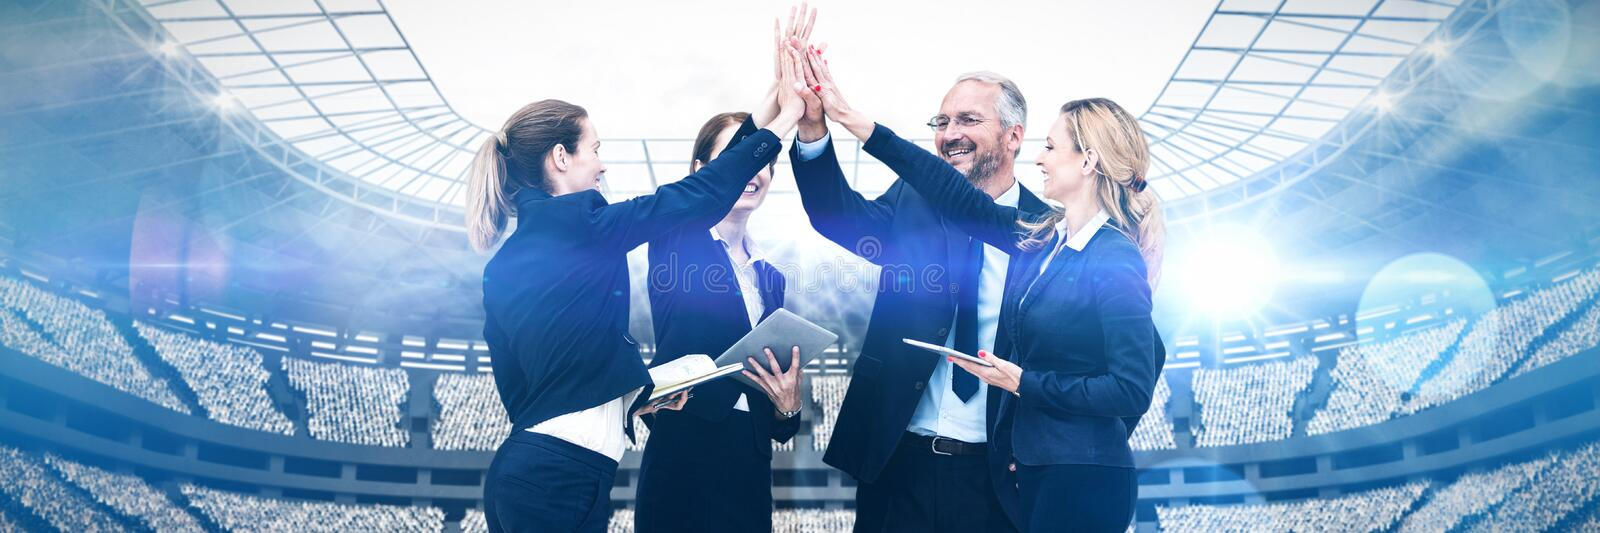 Composite image of happy business people giving high five against white background royalty free stock photos